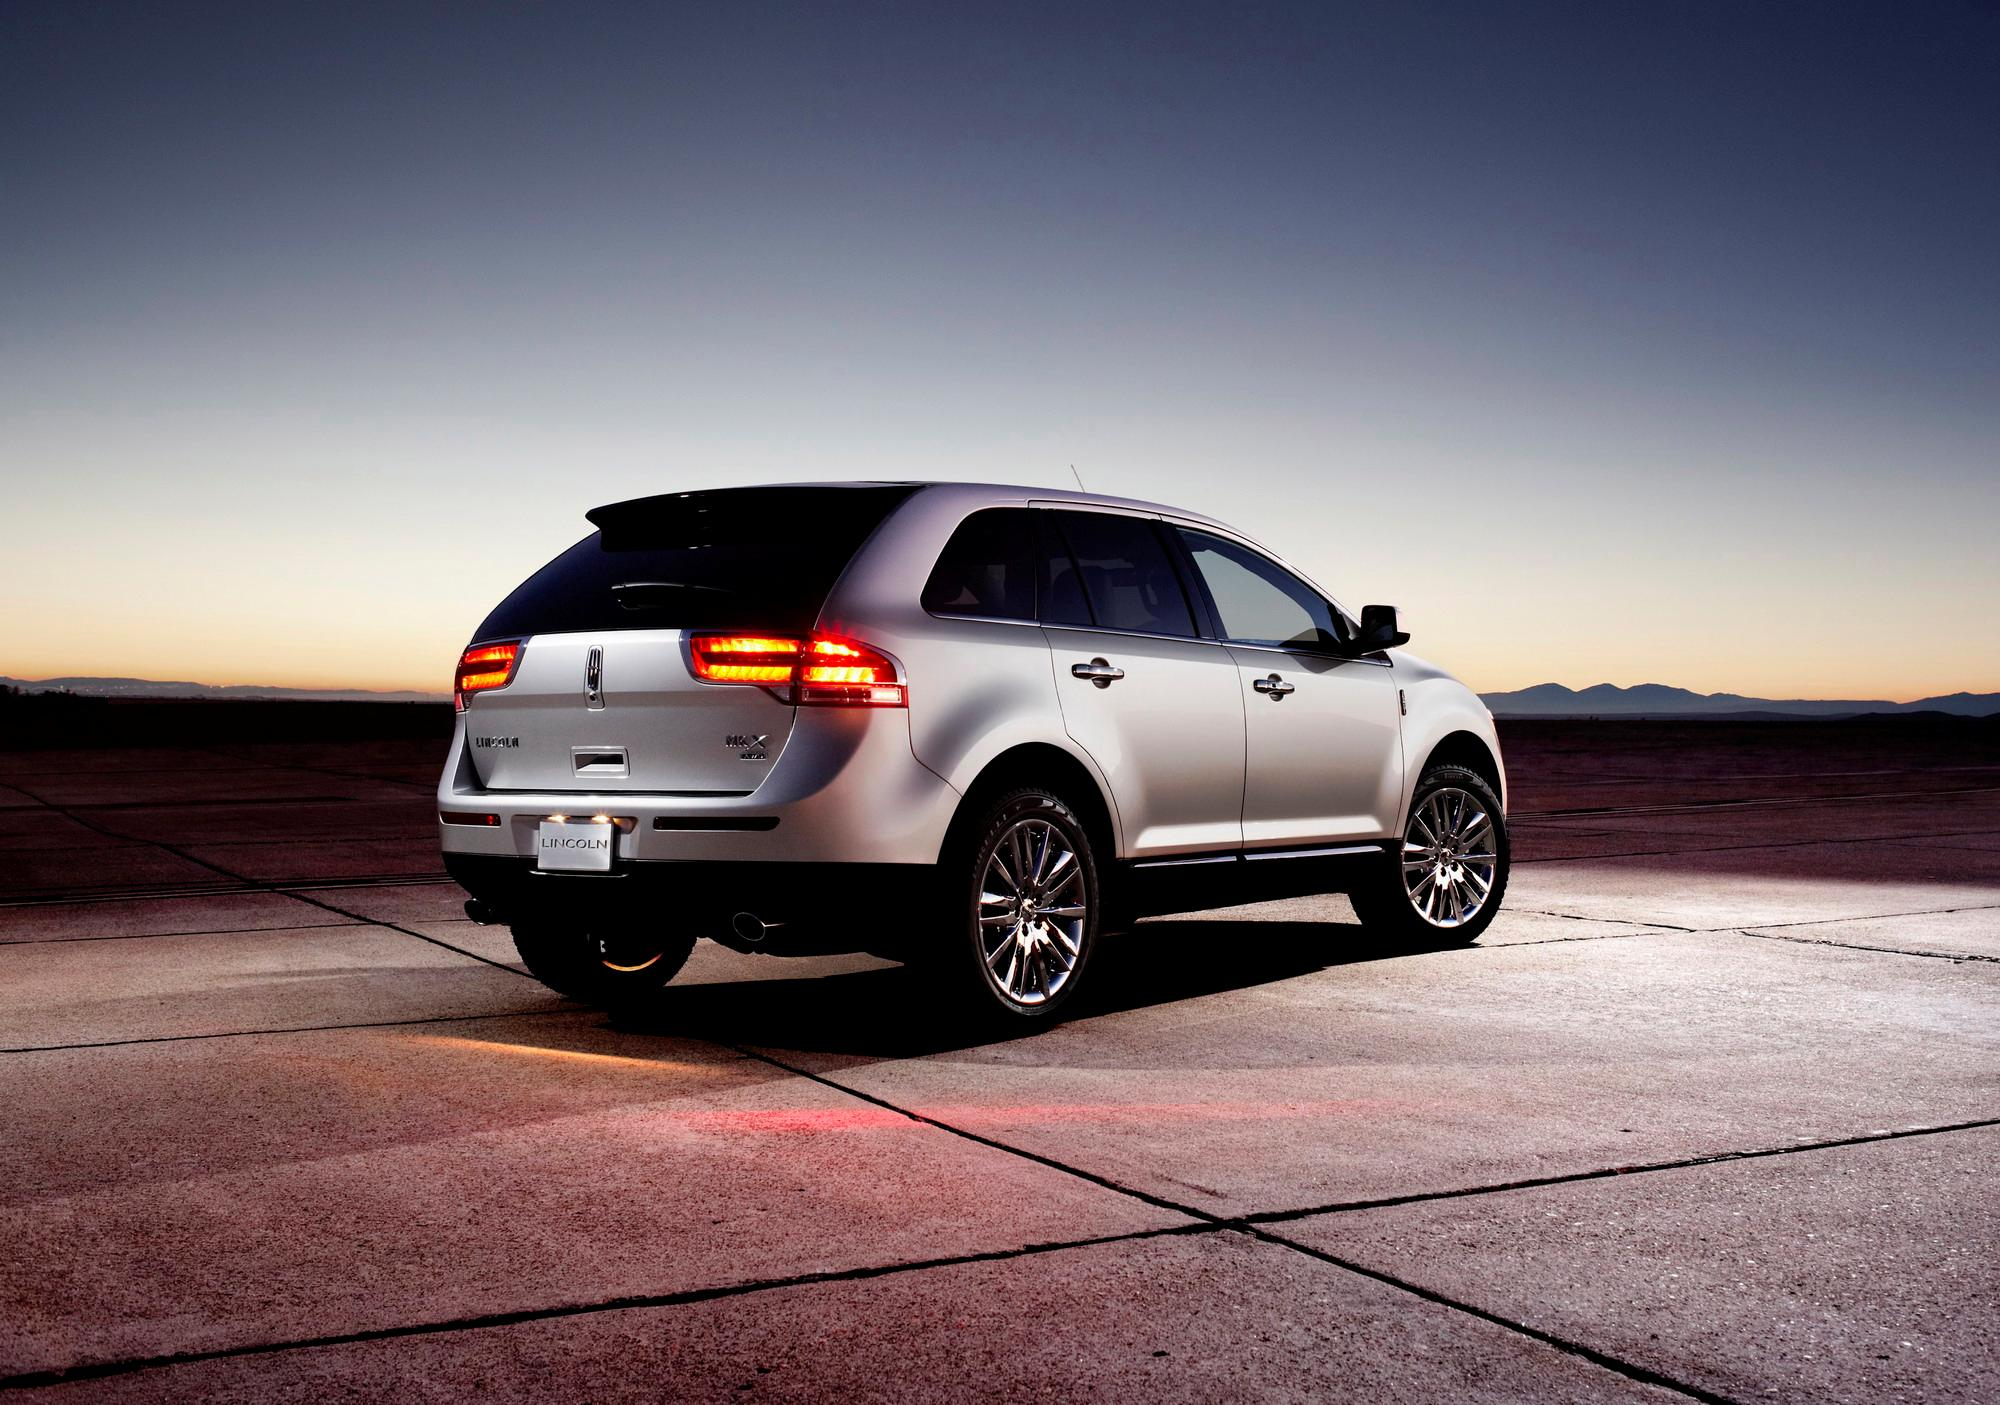 2011 Lincoln MKX | Top Speed. »